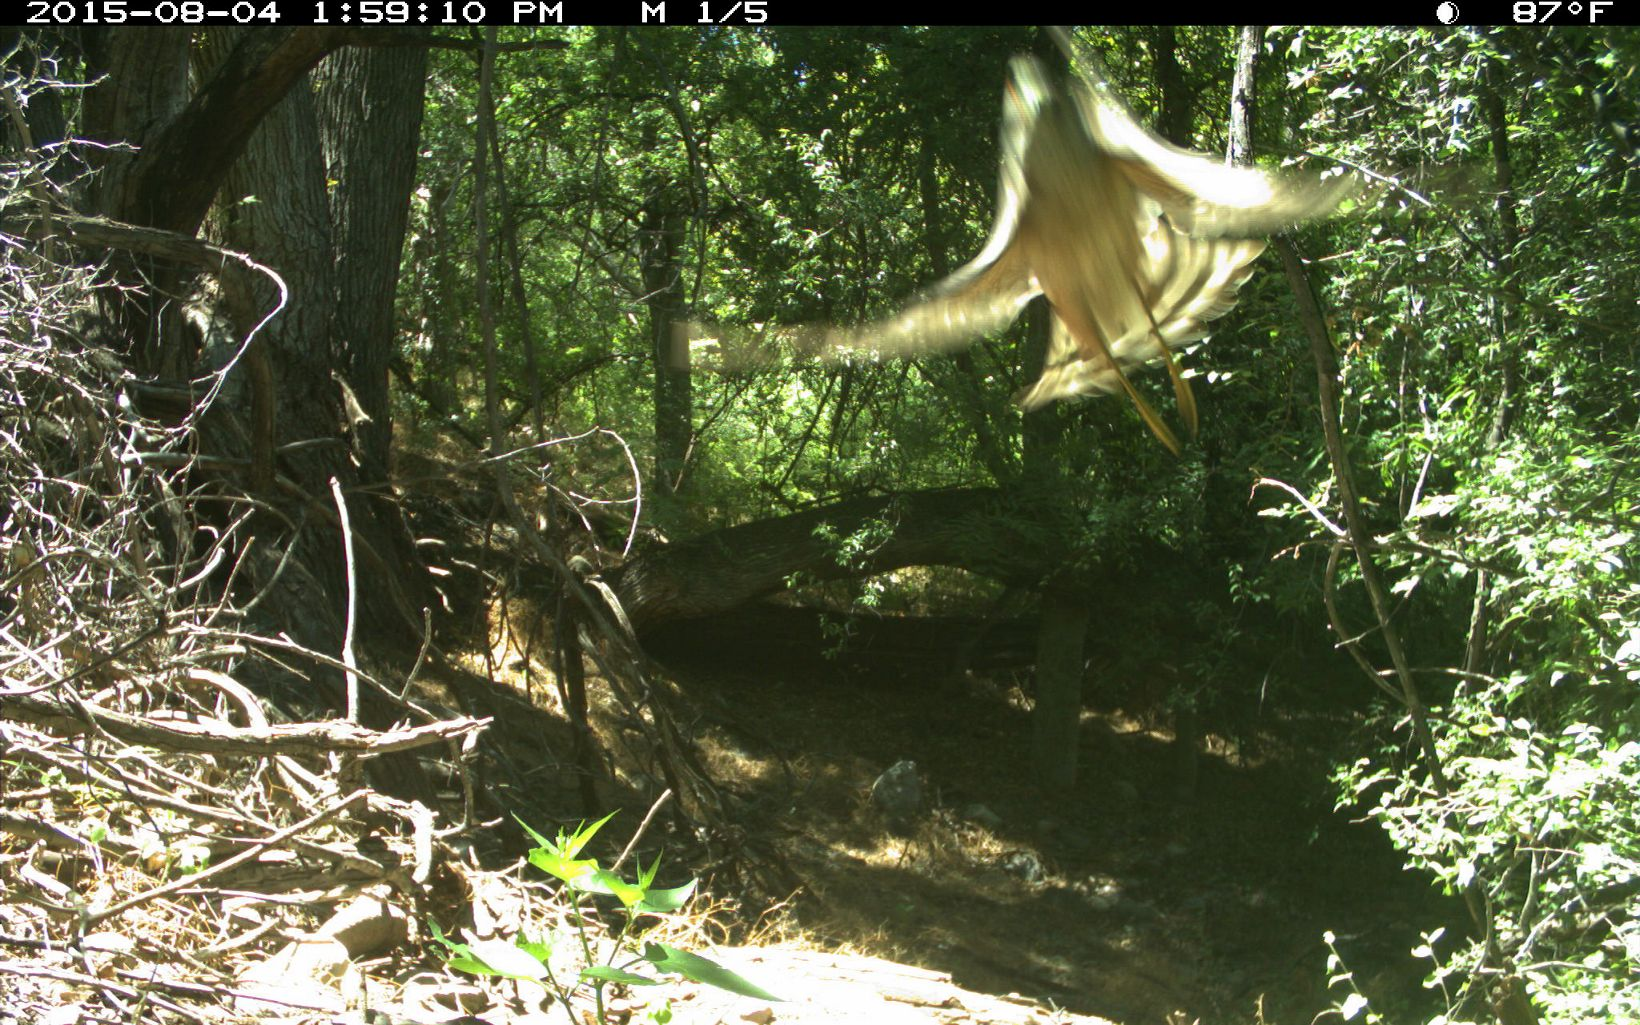 A cooper's hawk flies in front of the trail camera